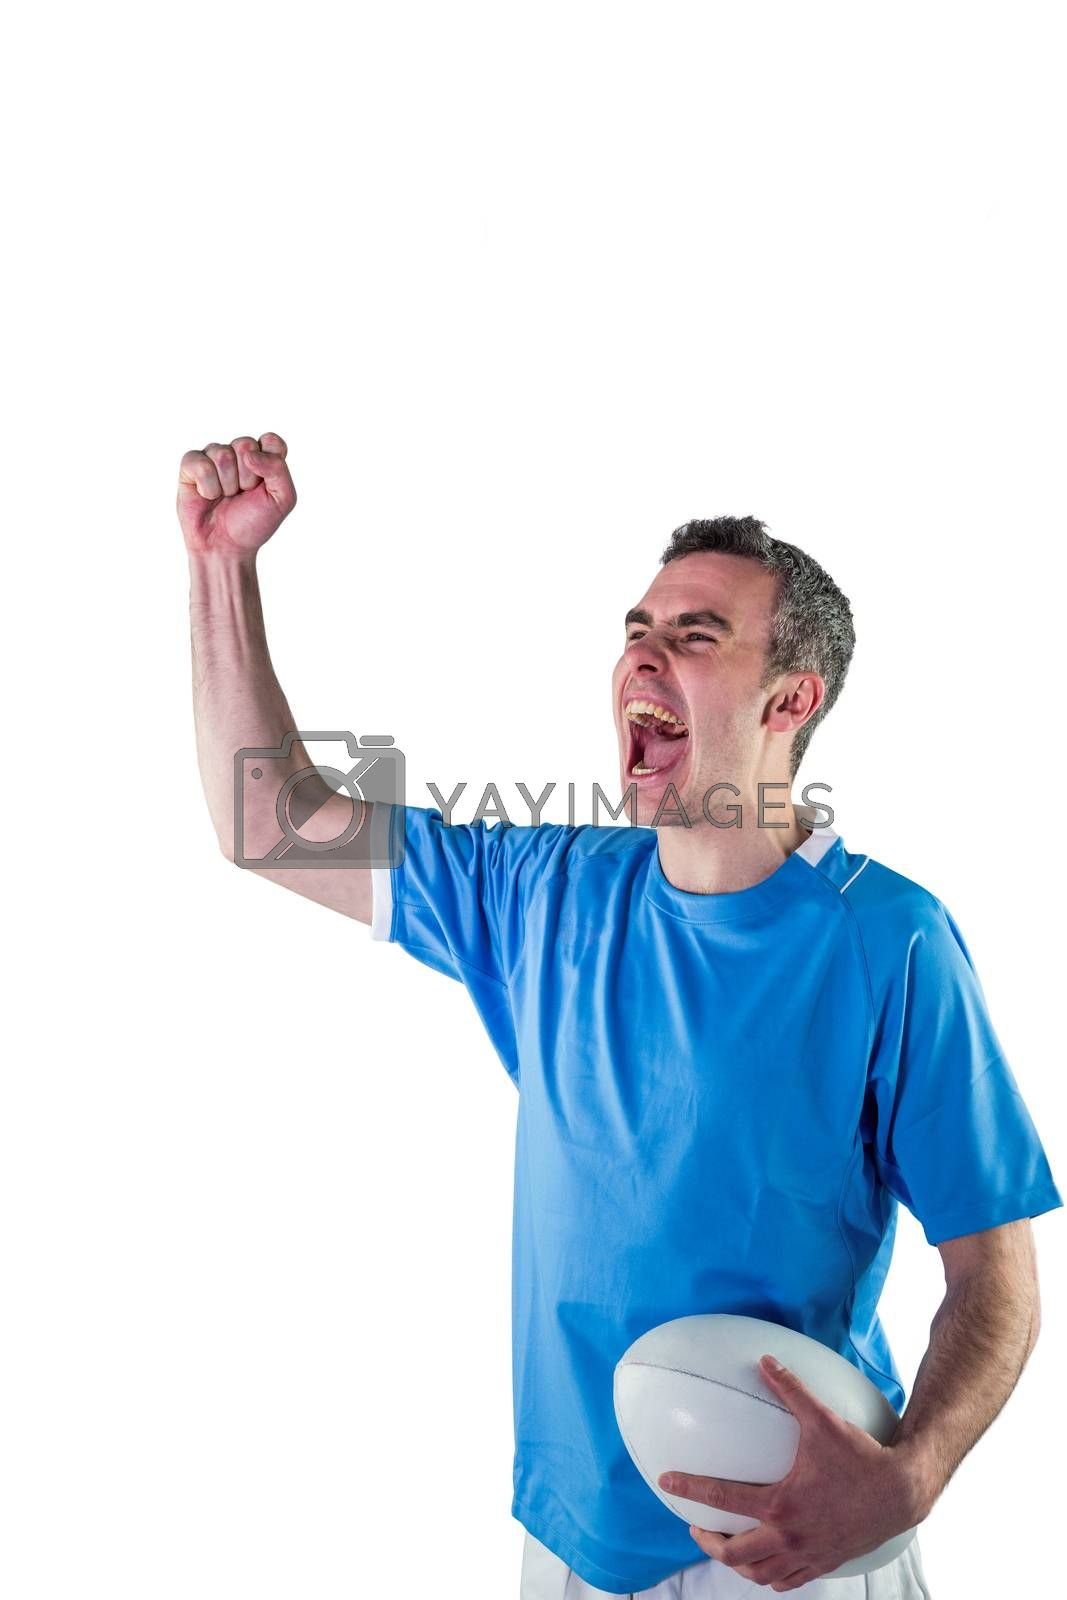 Royalty free image of A rugby player gesturing victory by Wavebreakmedia